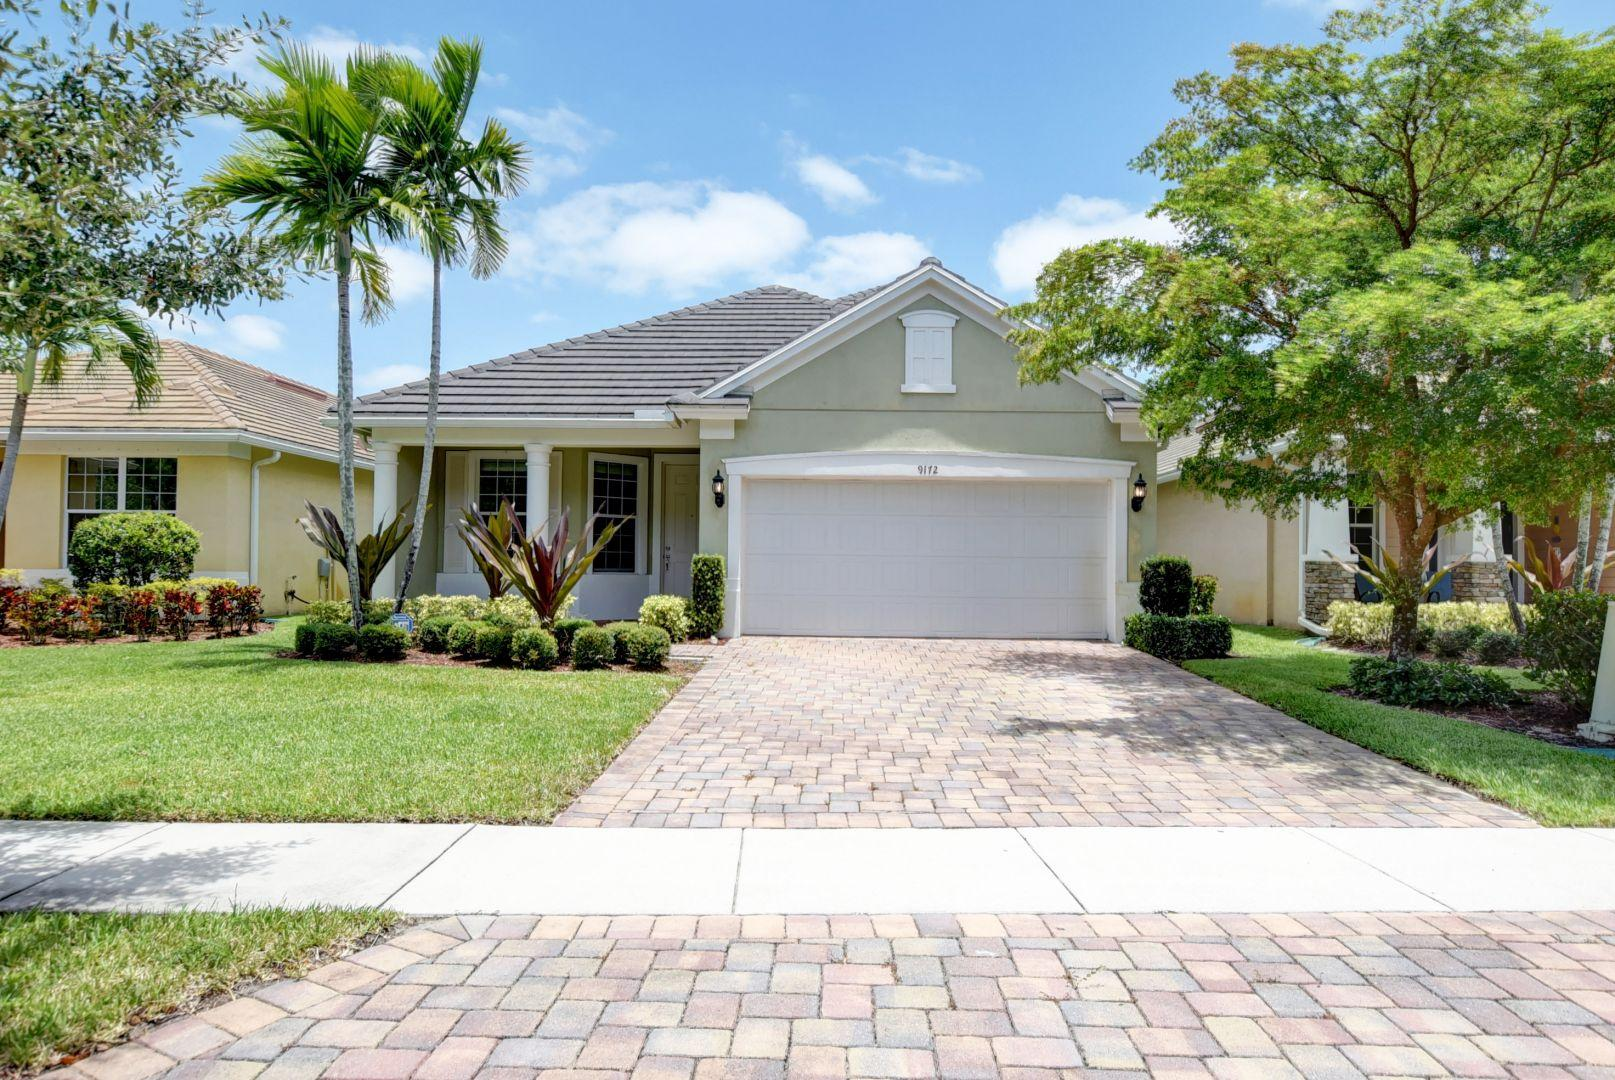 Home for sale in Oakhaven Lake Worth Florida